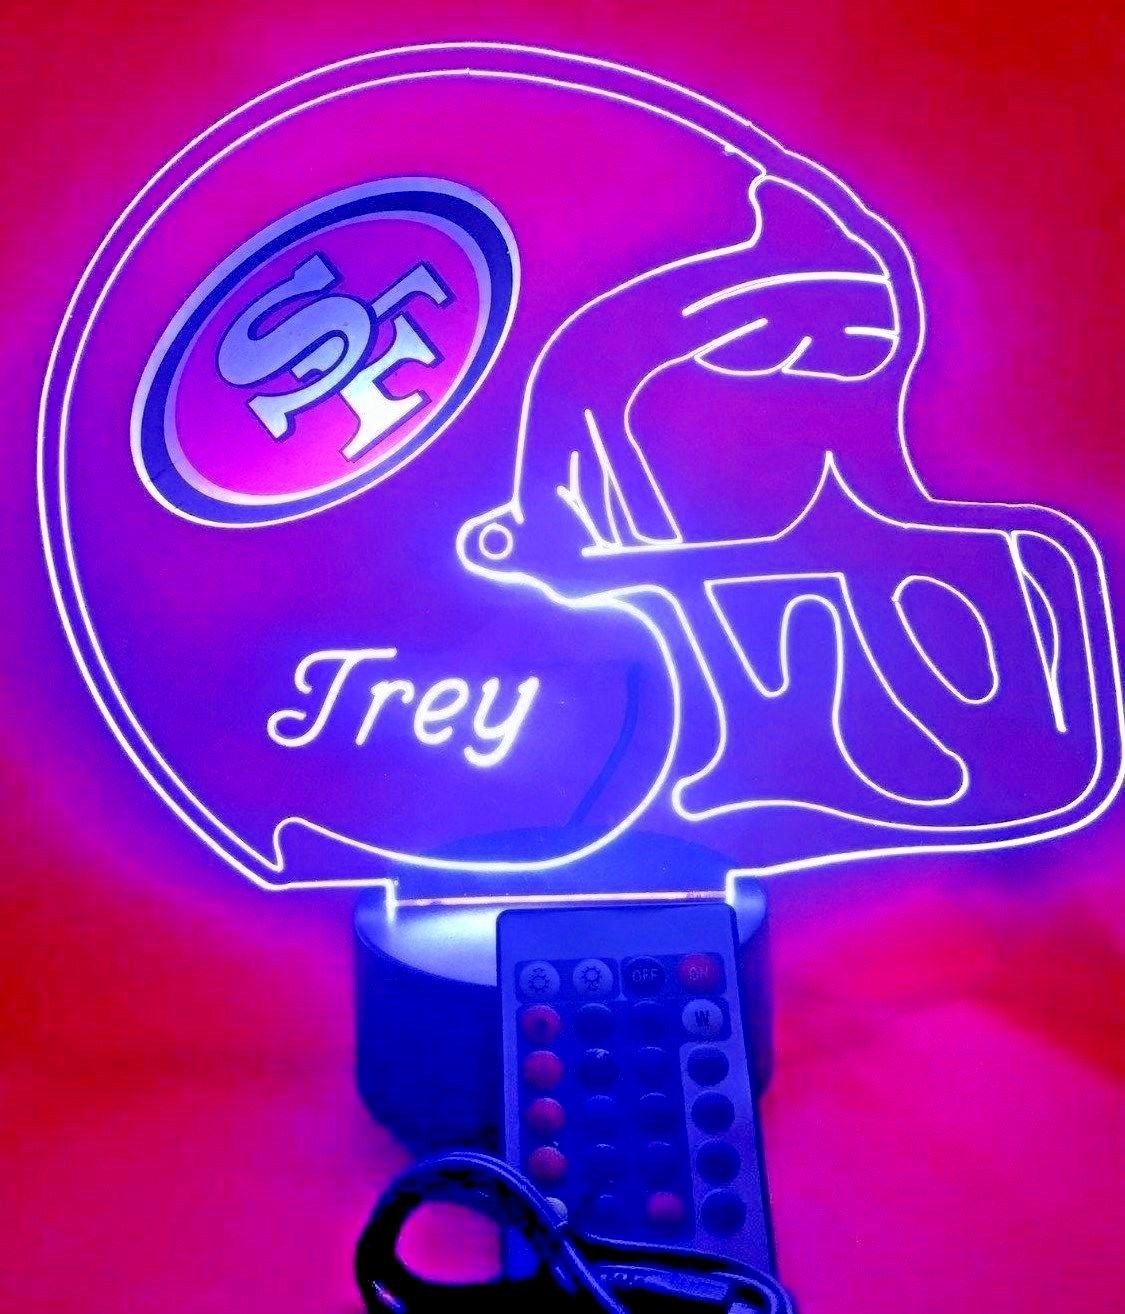 San Francisco 49ers NFL Light Up Lamp LED Personalized Free Football Light Up Light Lamp LED Table Lamp, Our Newest Feature - It's WOW, With Remote, 16 Color Options, Dimmer, Free Engraved, Great Gift Our Newest Feature - It' s WOW Mirror Mania